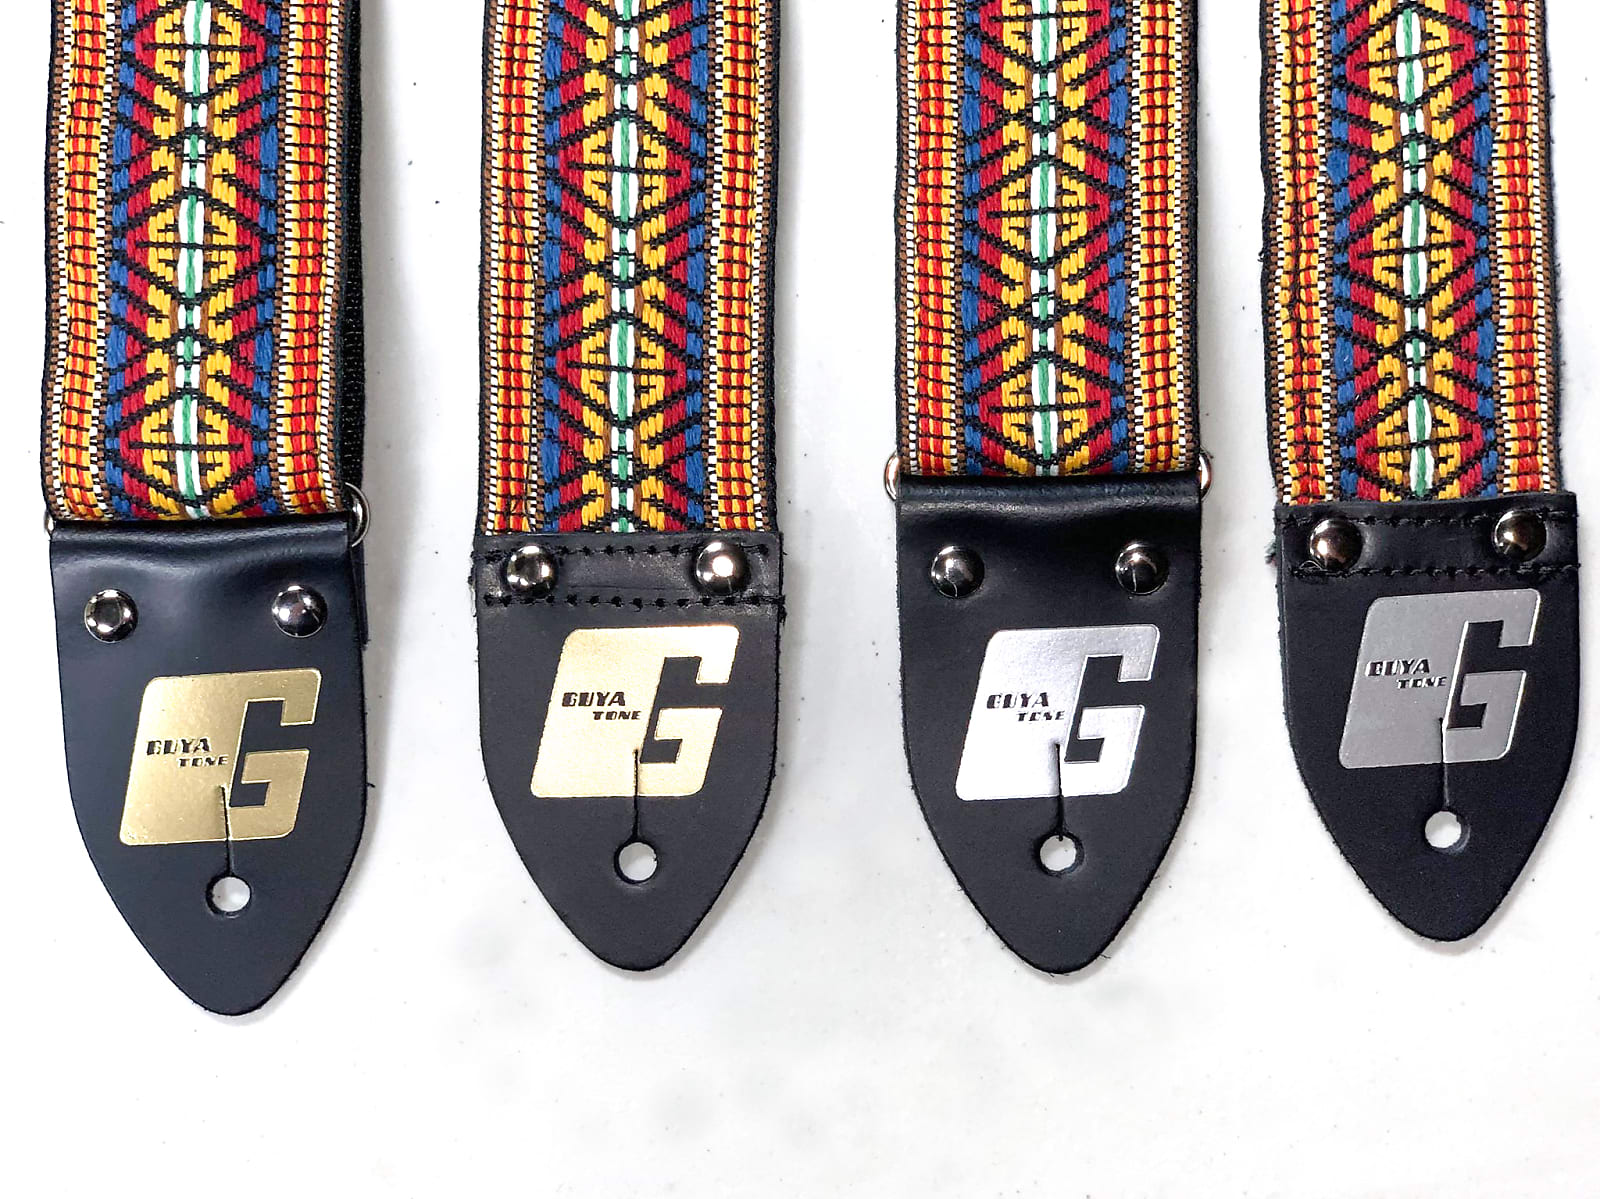 Guyatone Limited Hand-Made Vintage NEW Guitar Straps, from NOS Material! (Nylon Backing)